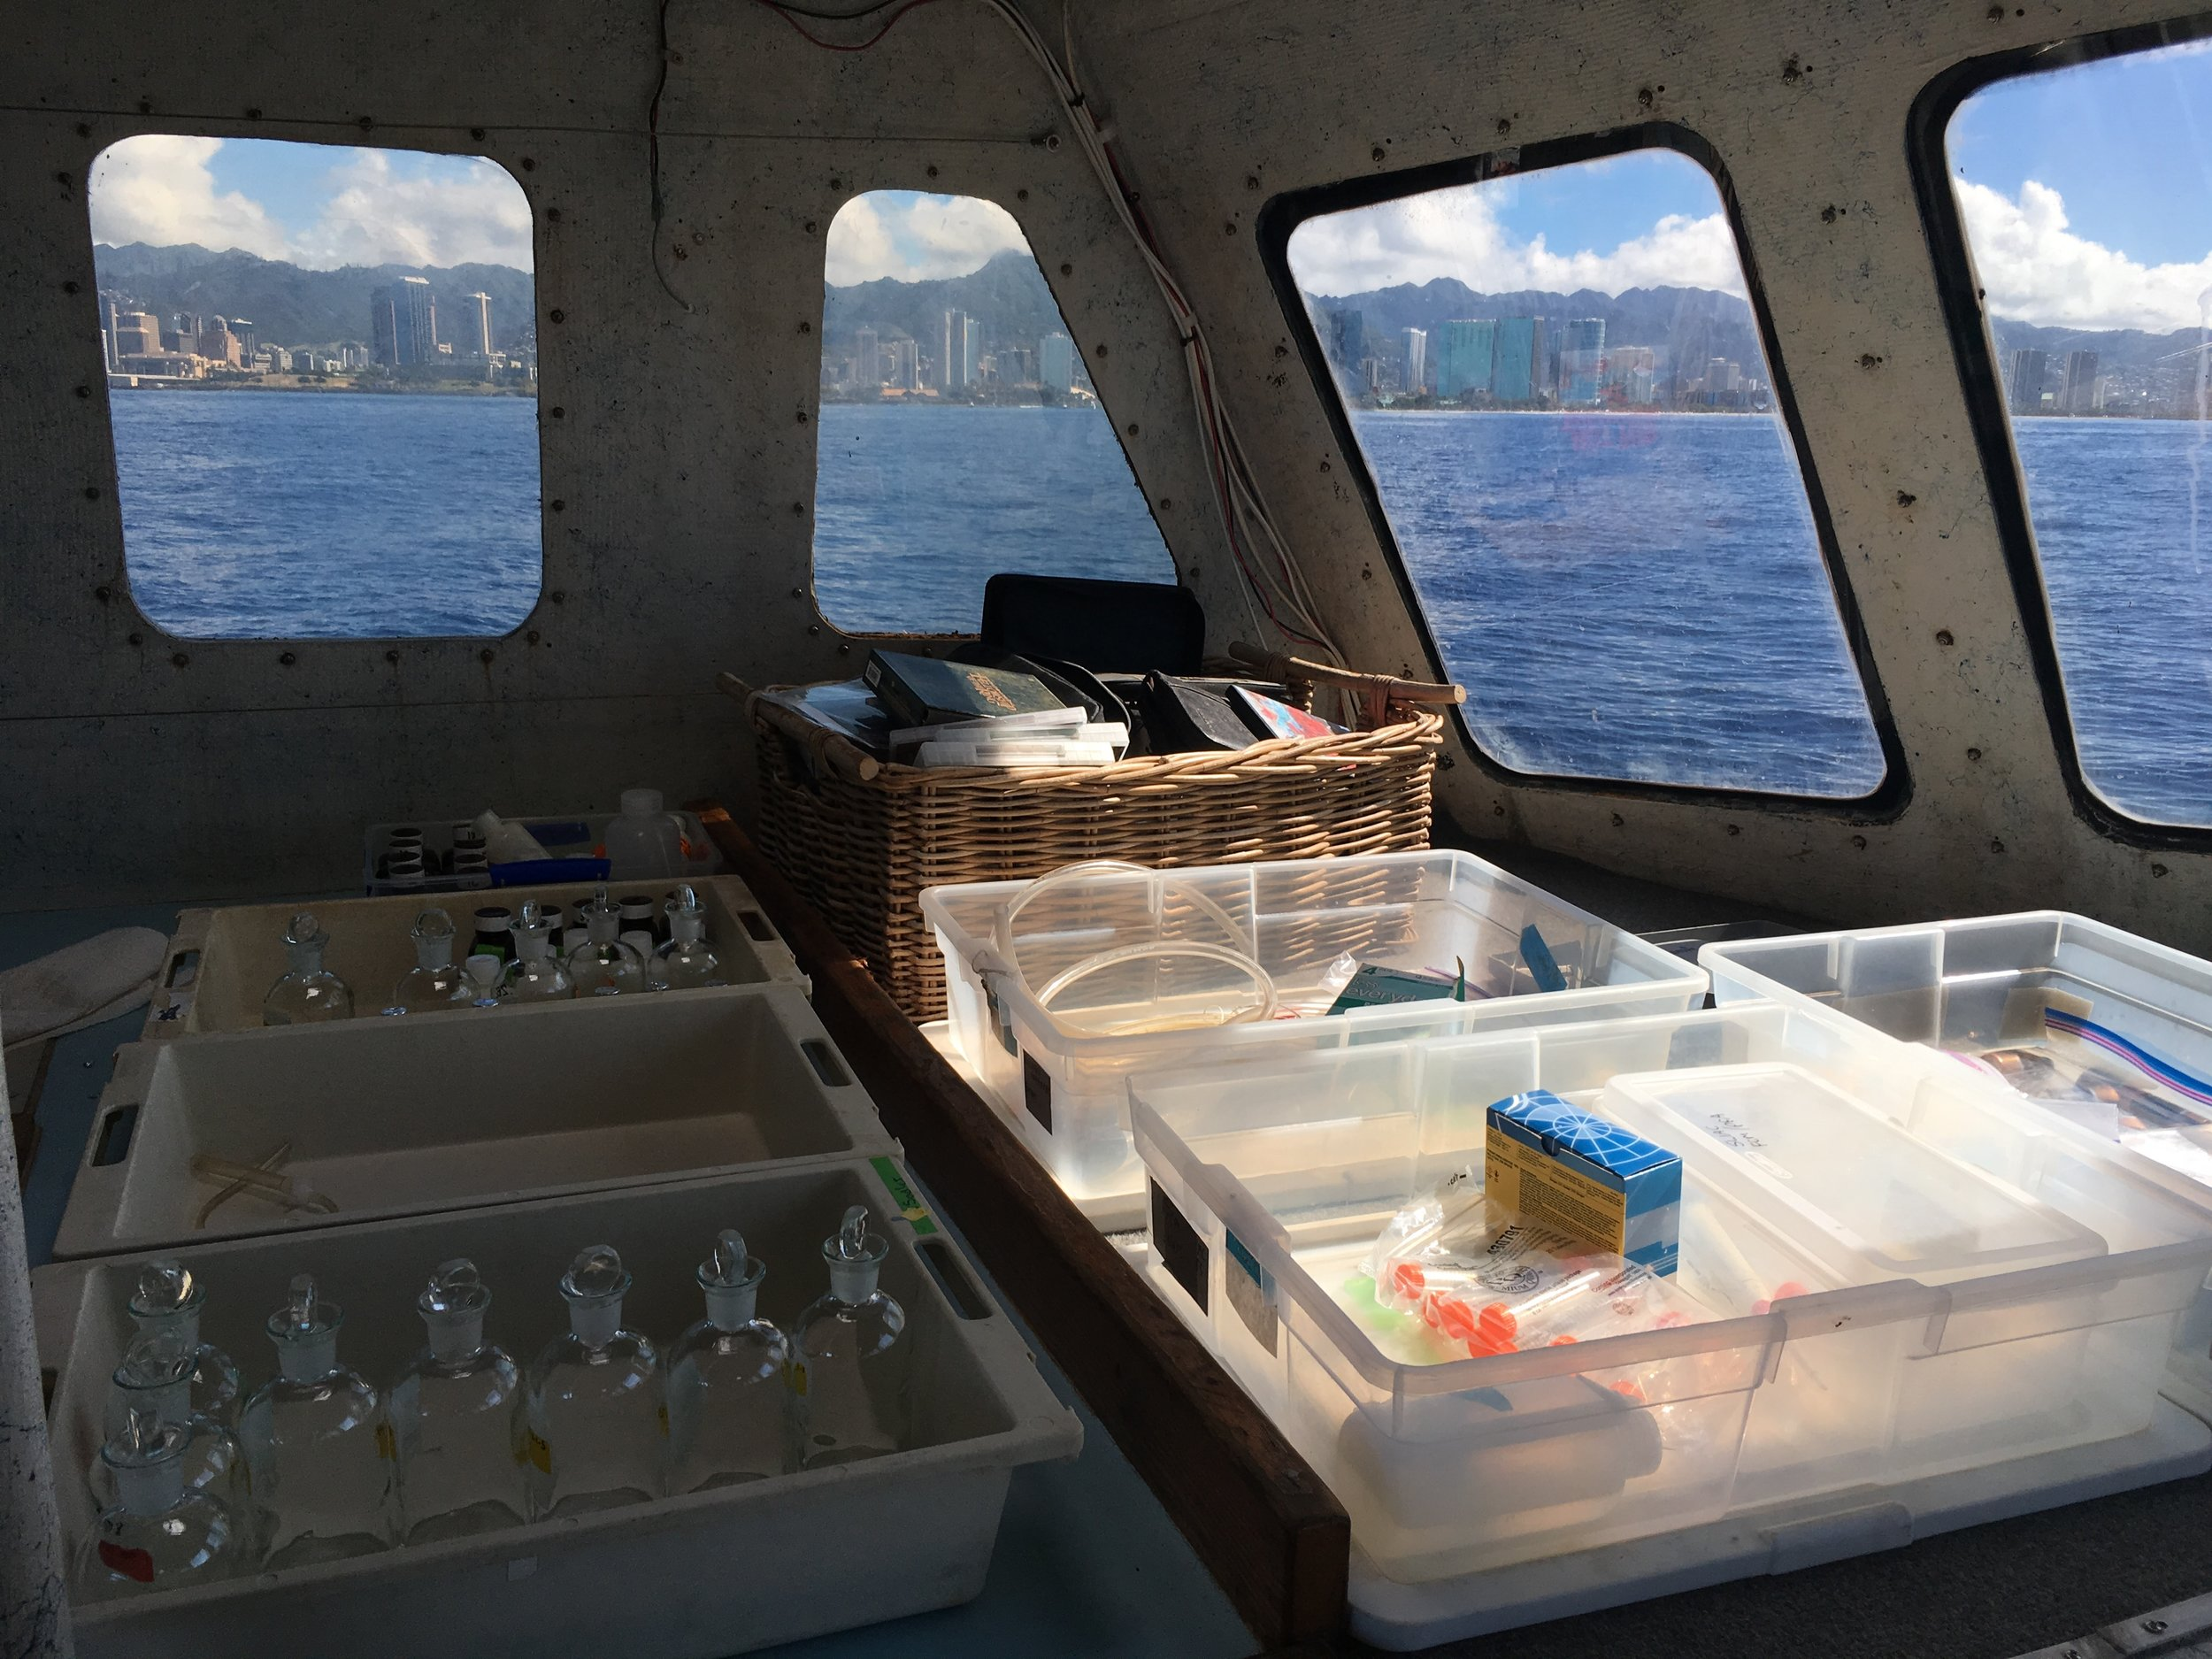 On board laboratory on the Hoʻoponopono, Mamala Bay